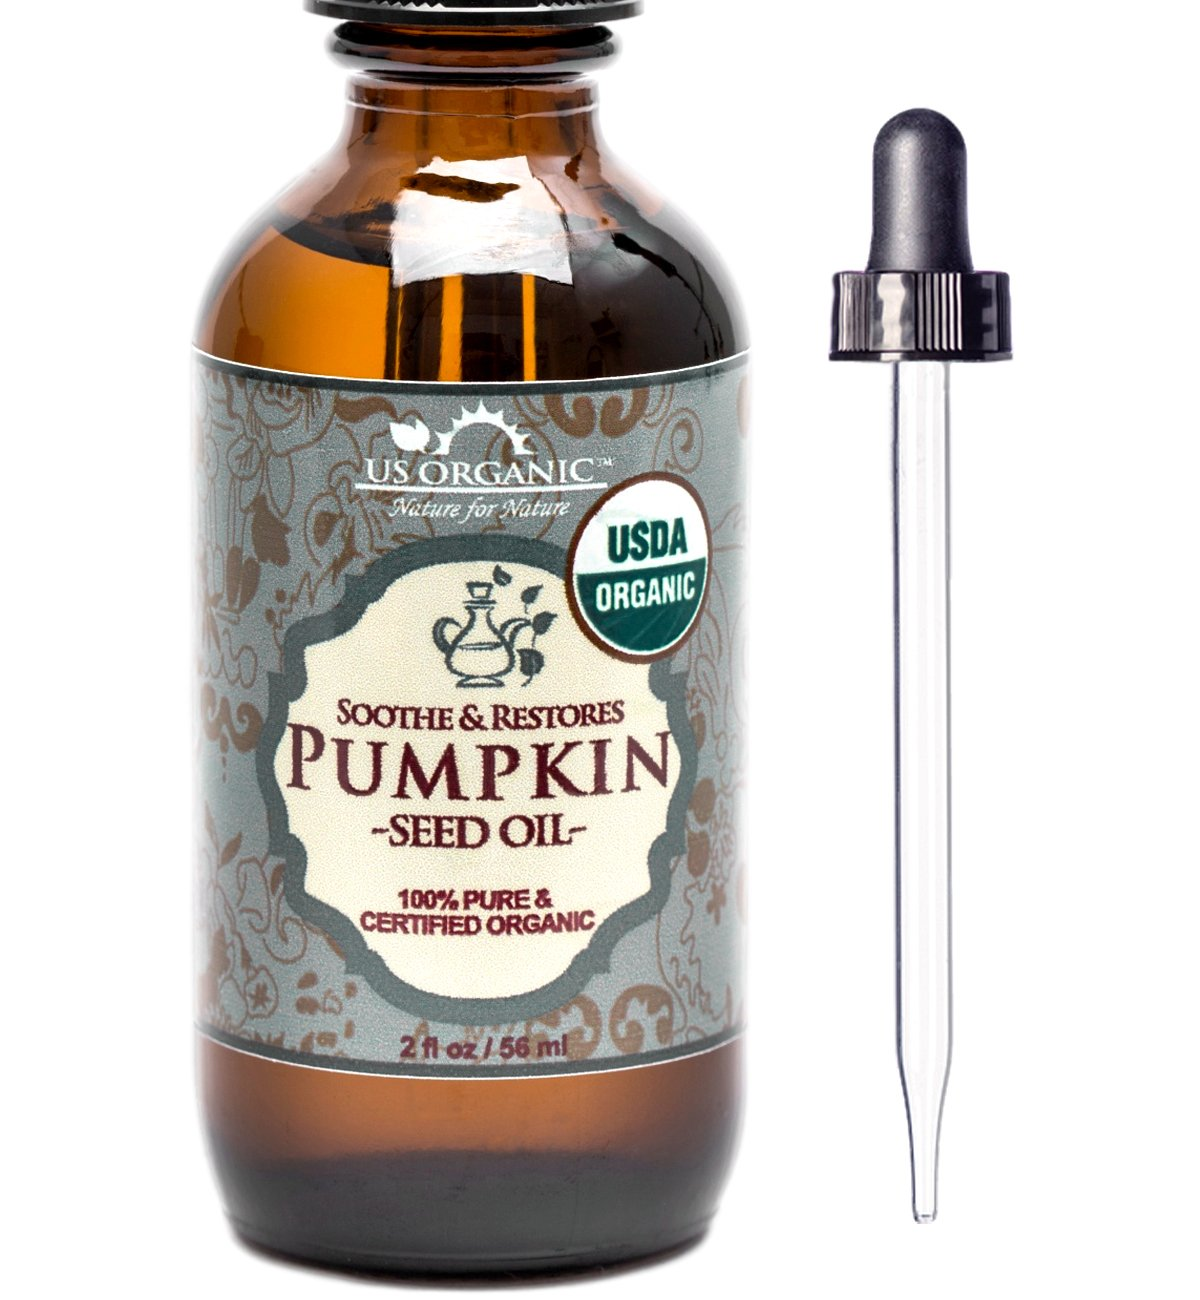 US Organic Pumpkin Seed Oil, USDA Certified Organic,100% Pure & Natural, Cold Pressed Virgin, Unrefined in Amber Glass Bottle w/ Glass Eyedropper for Easy Application (2 oz (56 ml))